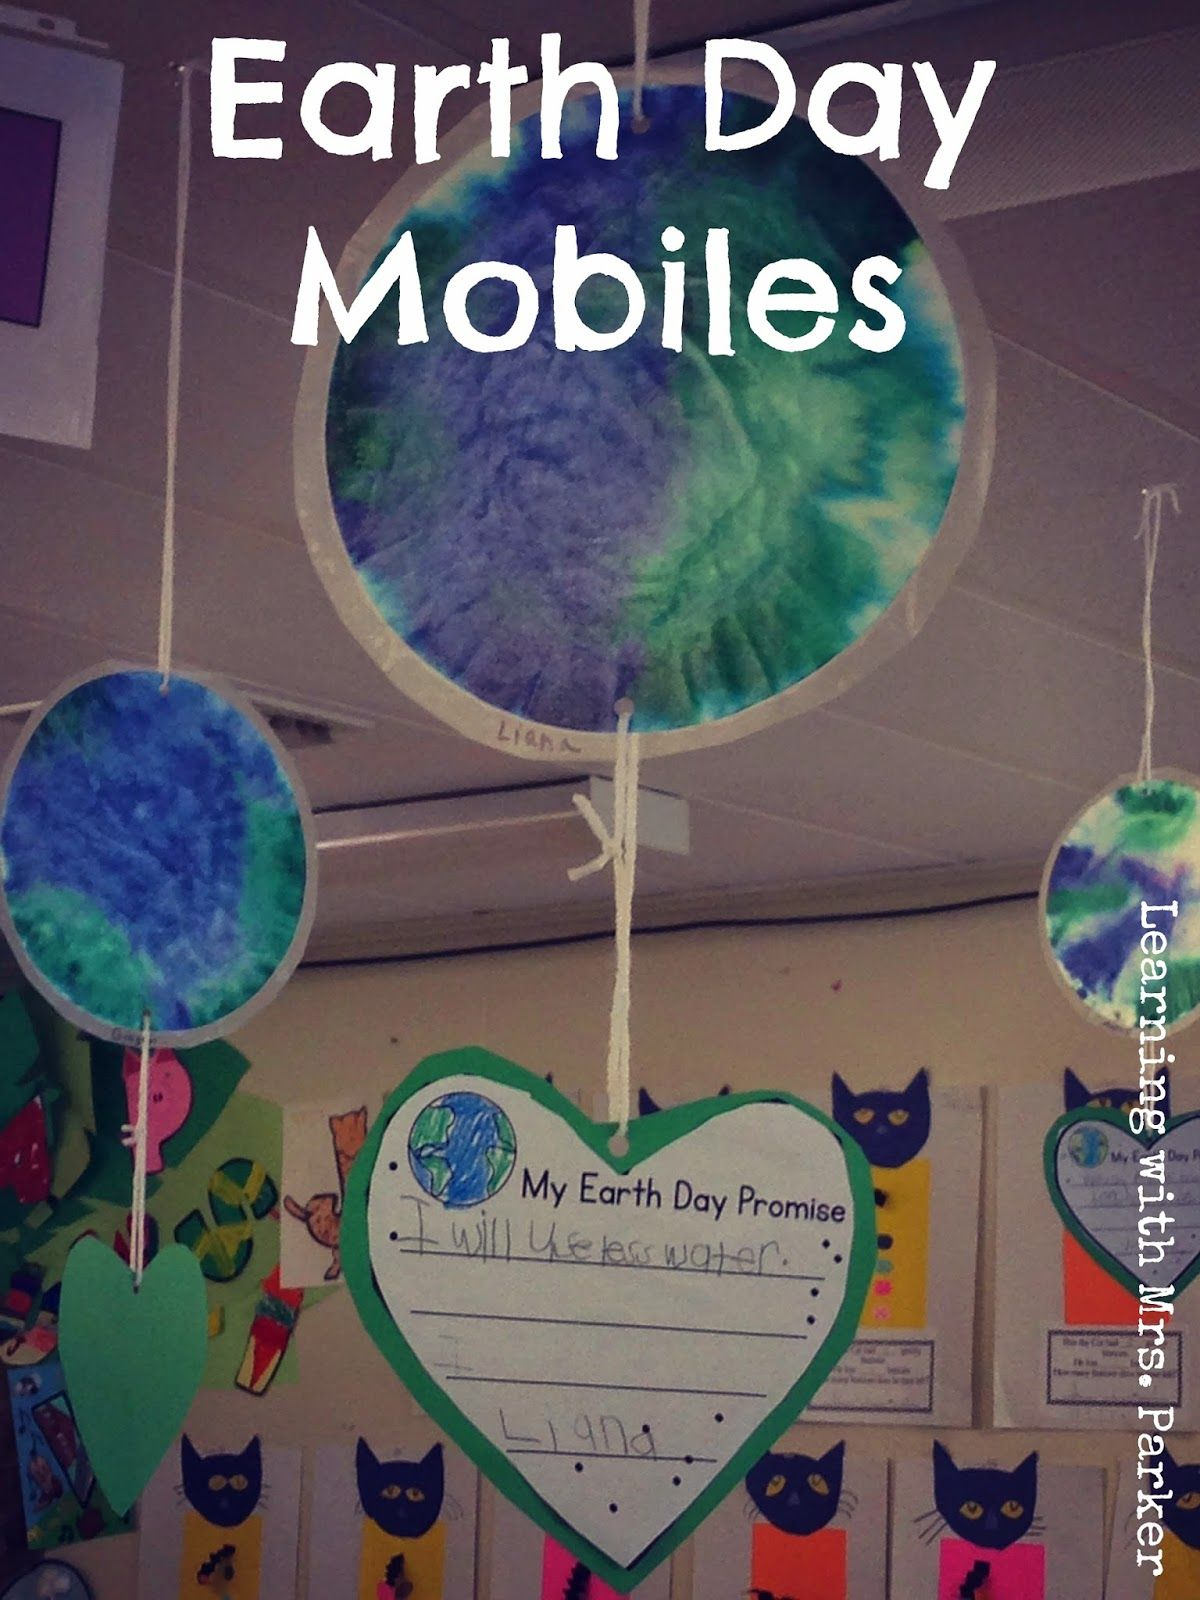 Earth Day Mobiles